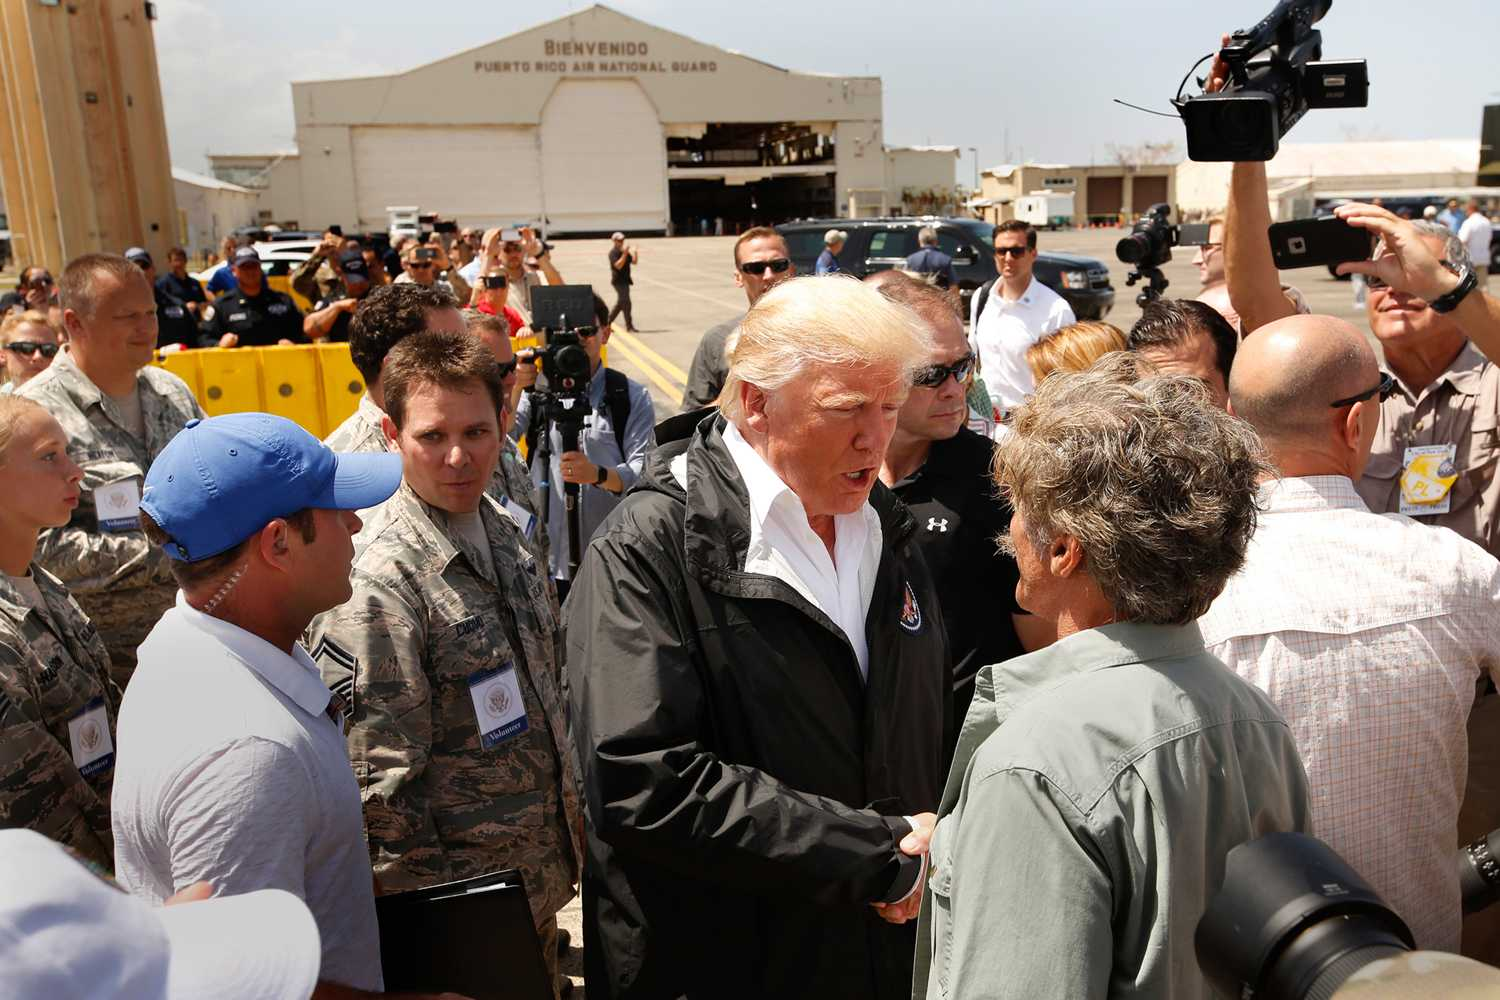 President Donald Trump and the First Lady Melania arrive at Muniz Air National Guard Base in Carolina, Puerto Rico on Oct. 3, 2017, almost two weeks after hurricane Maria hit the island. They met with residents there to greet the President. (Carolyn Cole/Los Angeles Times/TNS)